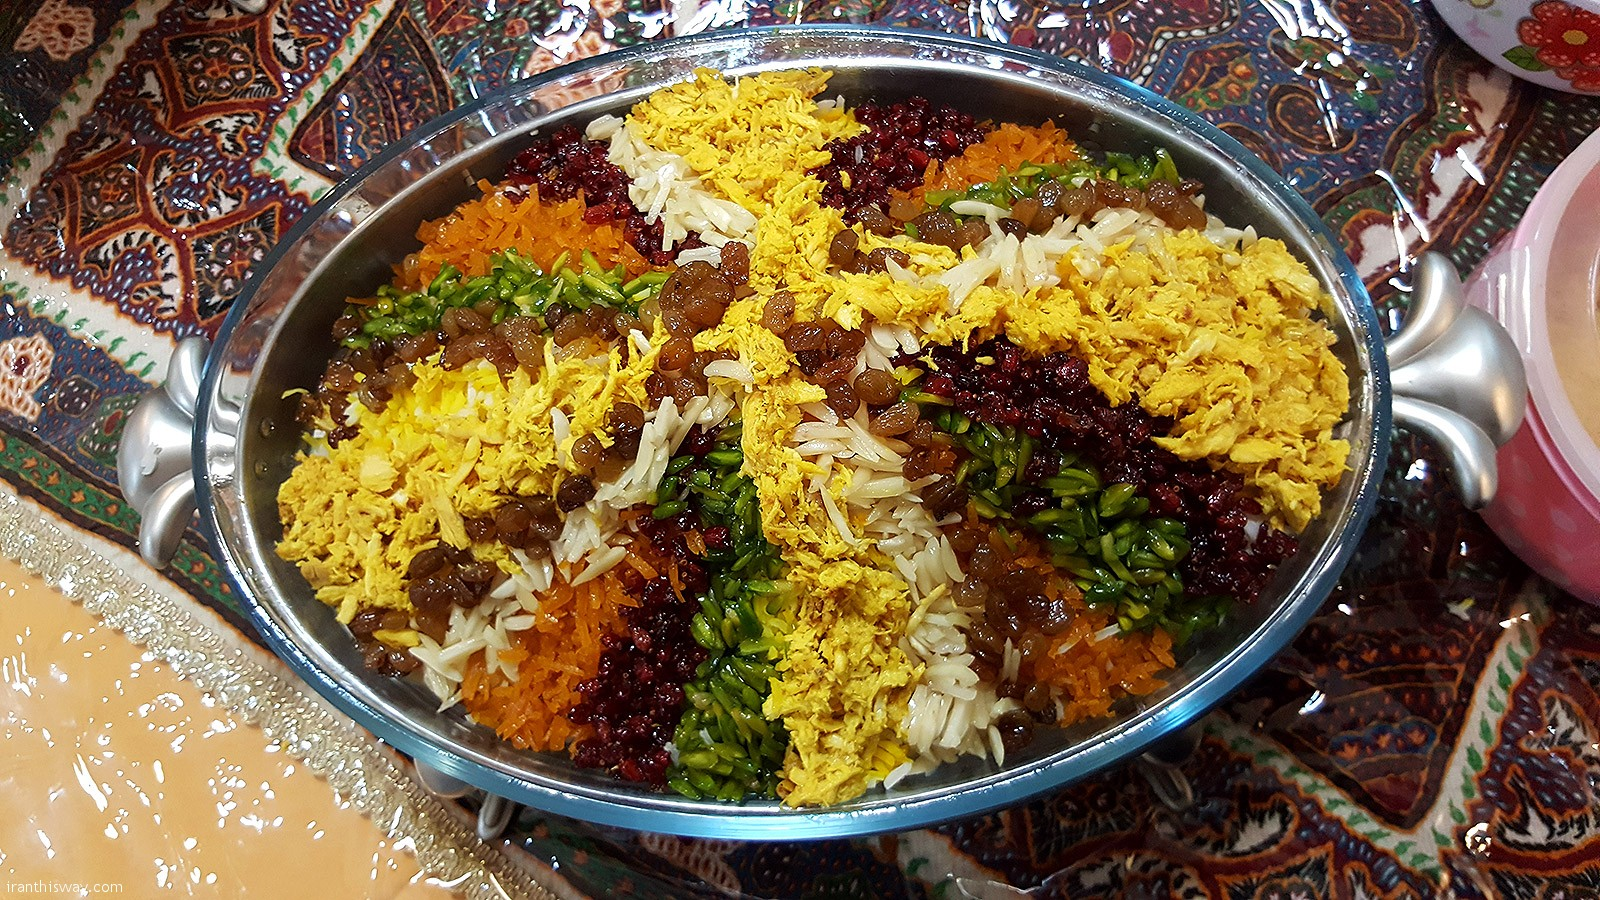 Jeweled Rice (Rice with Nuts and Dried Fruit)